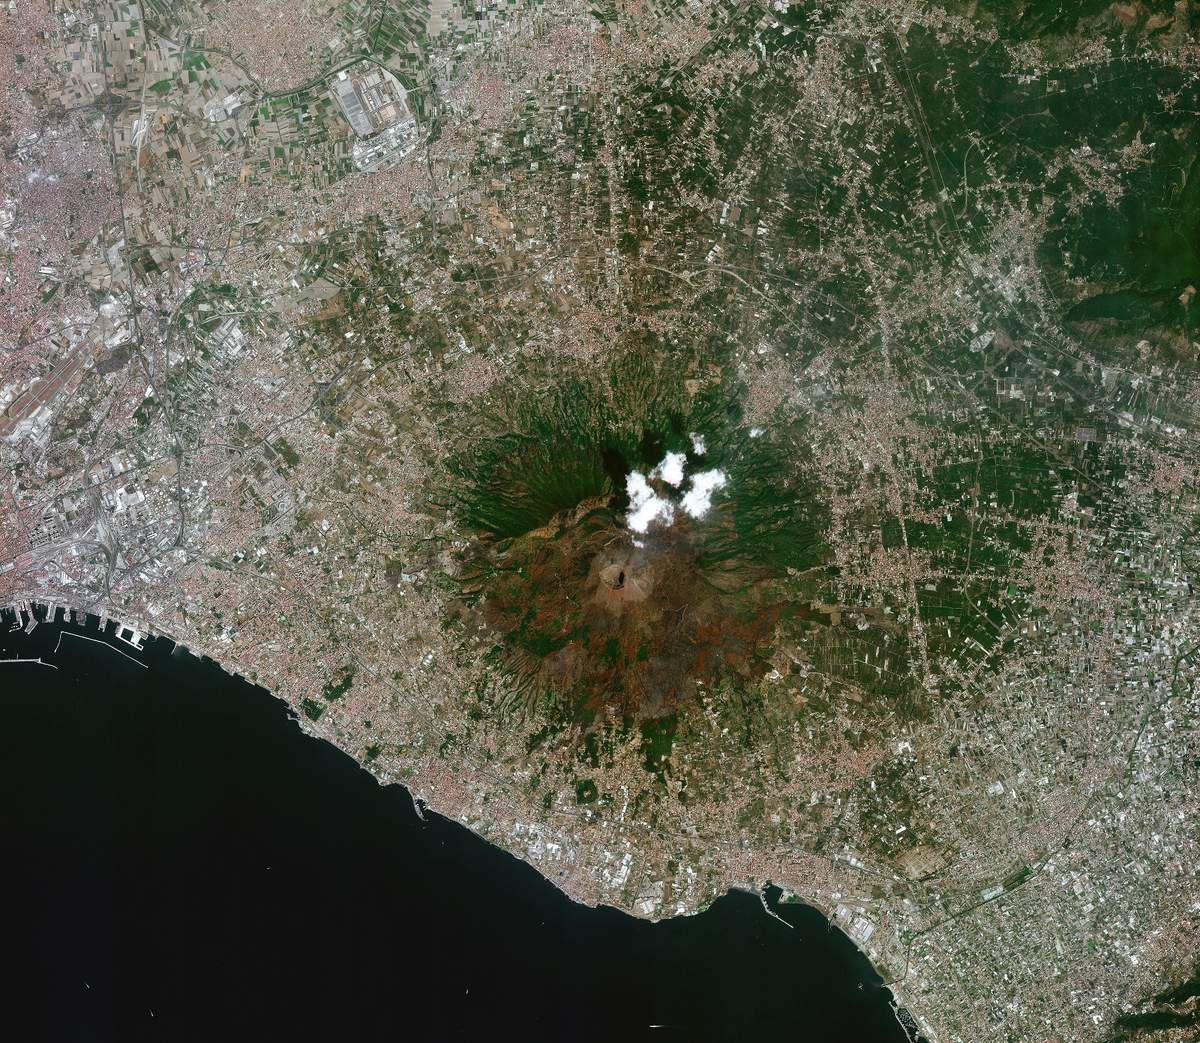 Venµs - Venus - Premières images - first images - satellite - Earth observation - Vesuve - Naples - Pompéi - Volcan - Italie - CNES